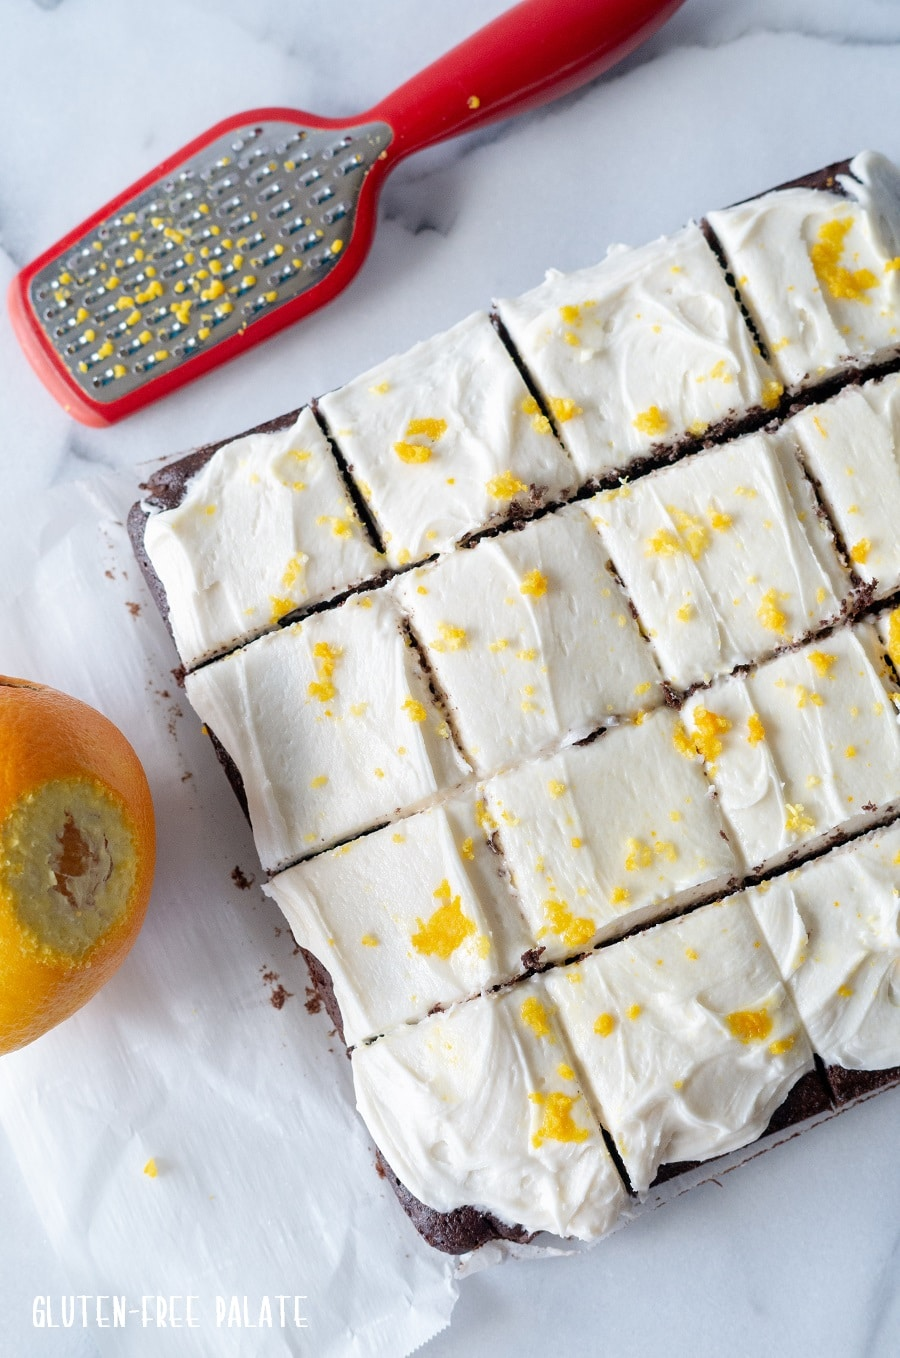 Rich, fudgy, and decadent, these Gluten-Free Orange Brownies with hints of orange zest are going to be the brownie of choice.